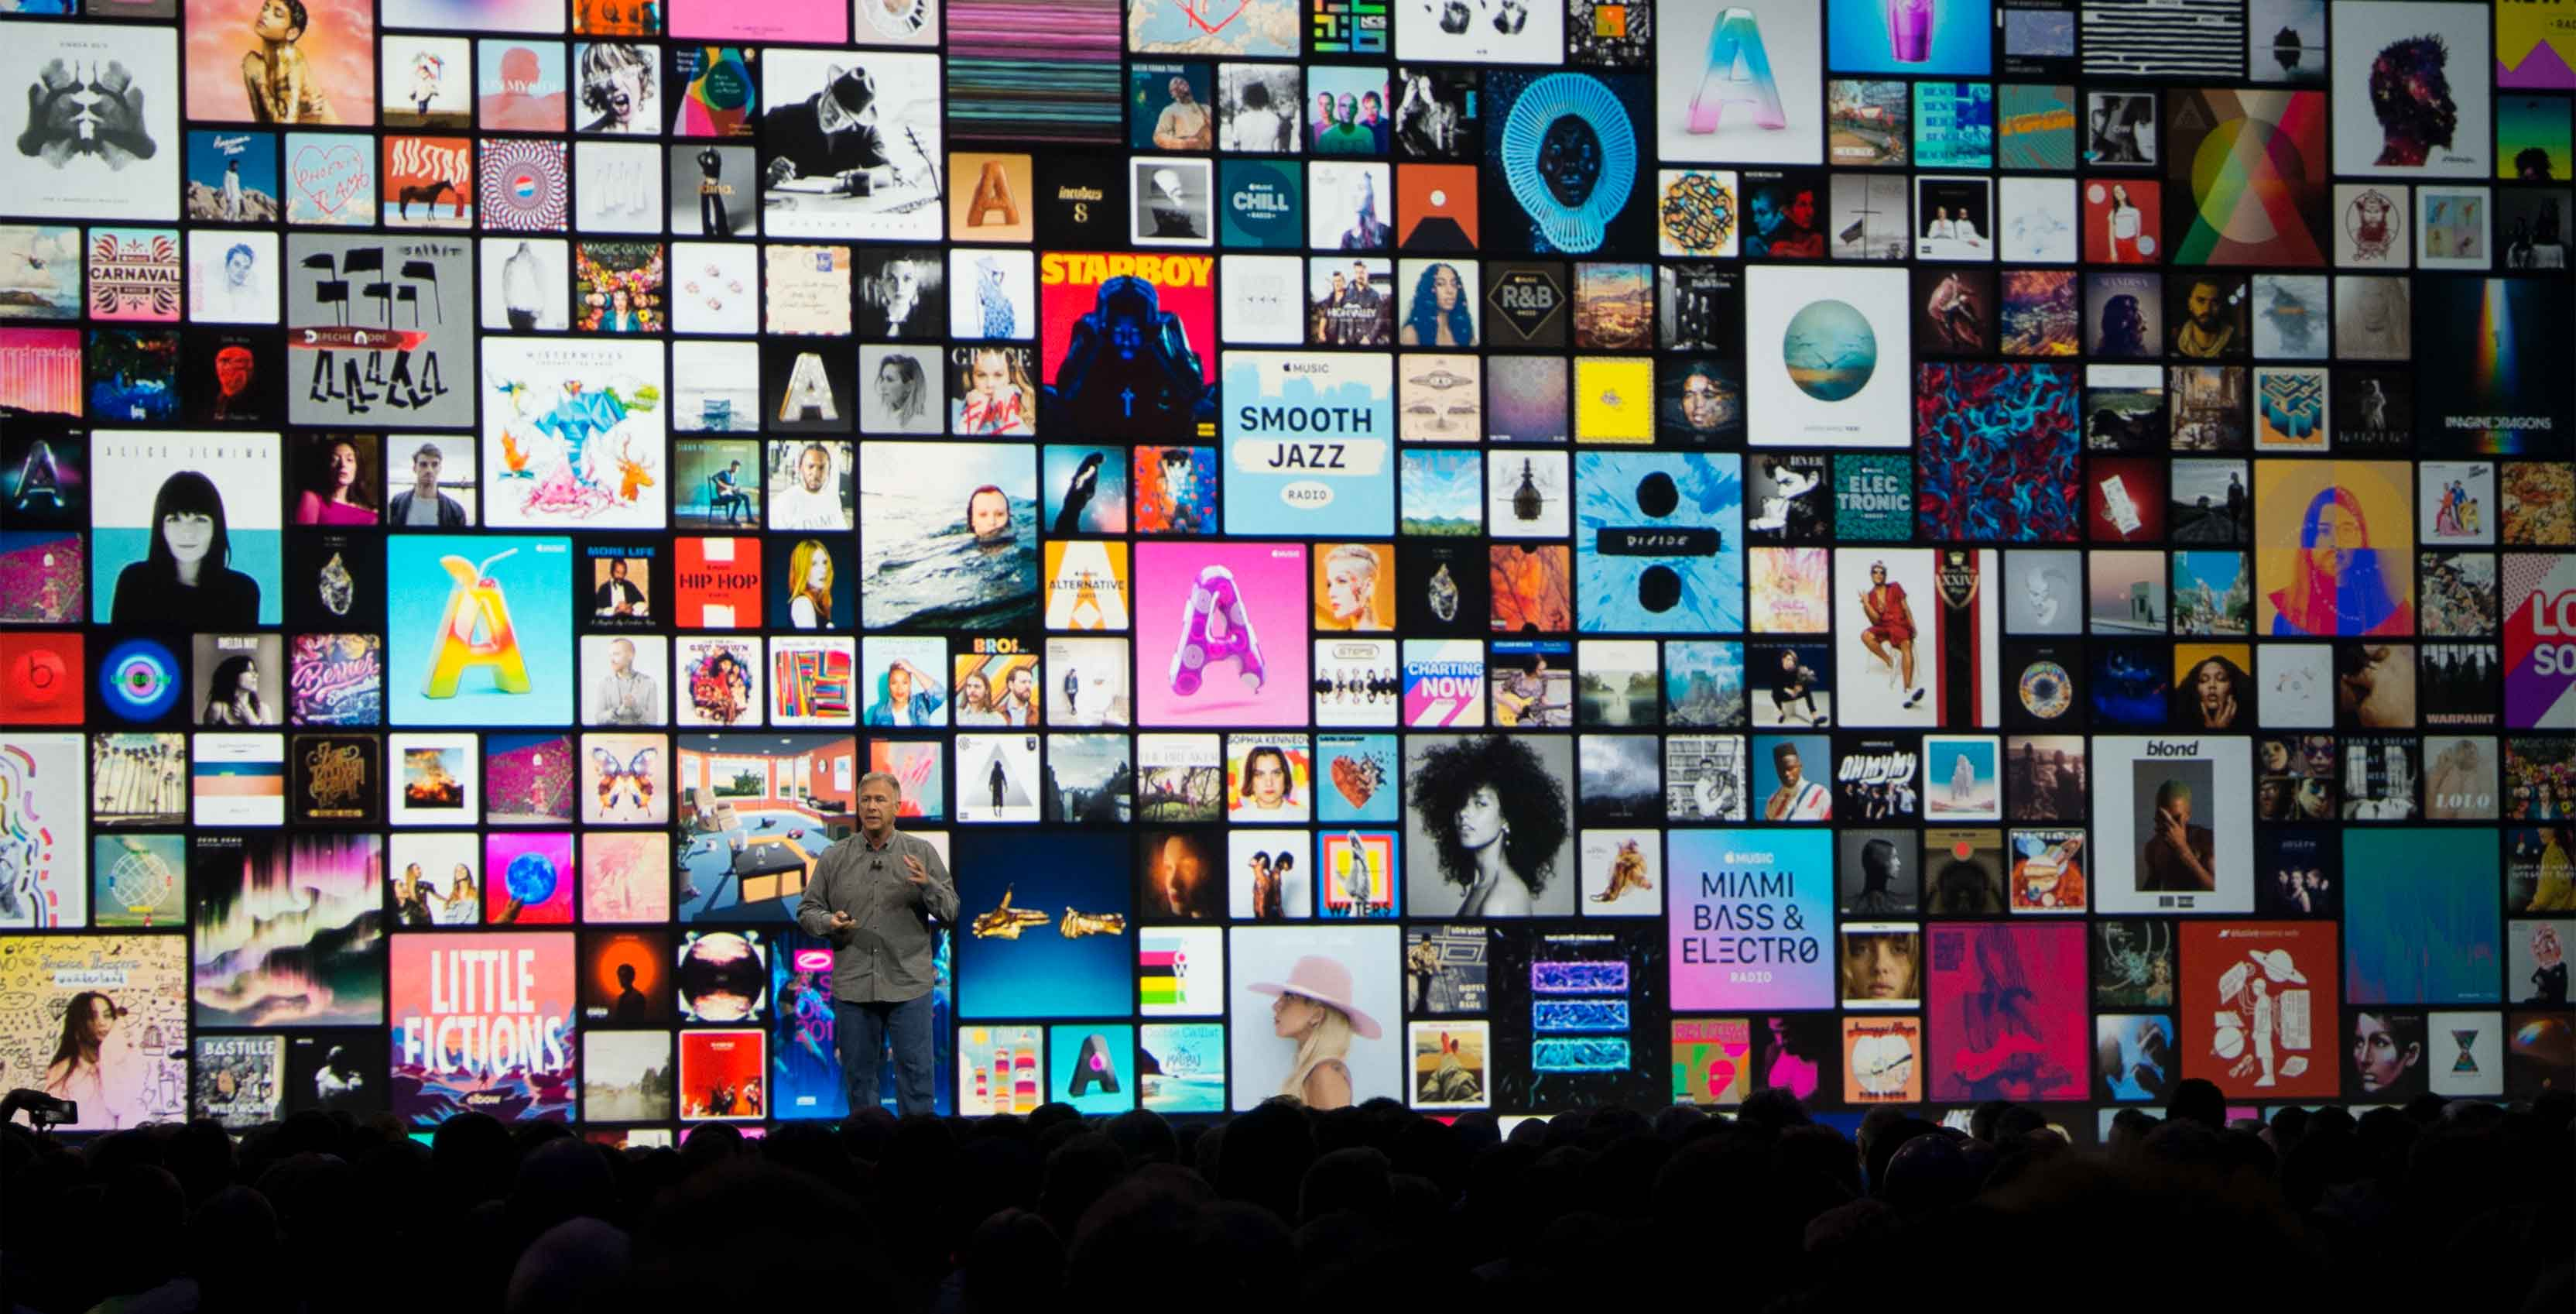 Here's how to watch Apple's WWDC 2018 opening keynote